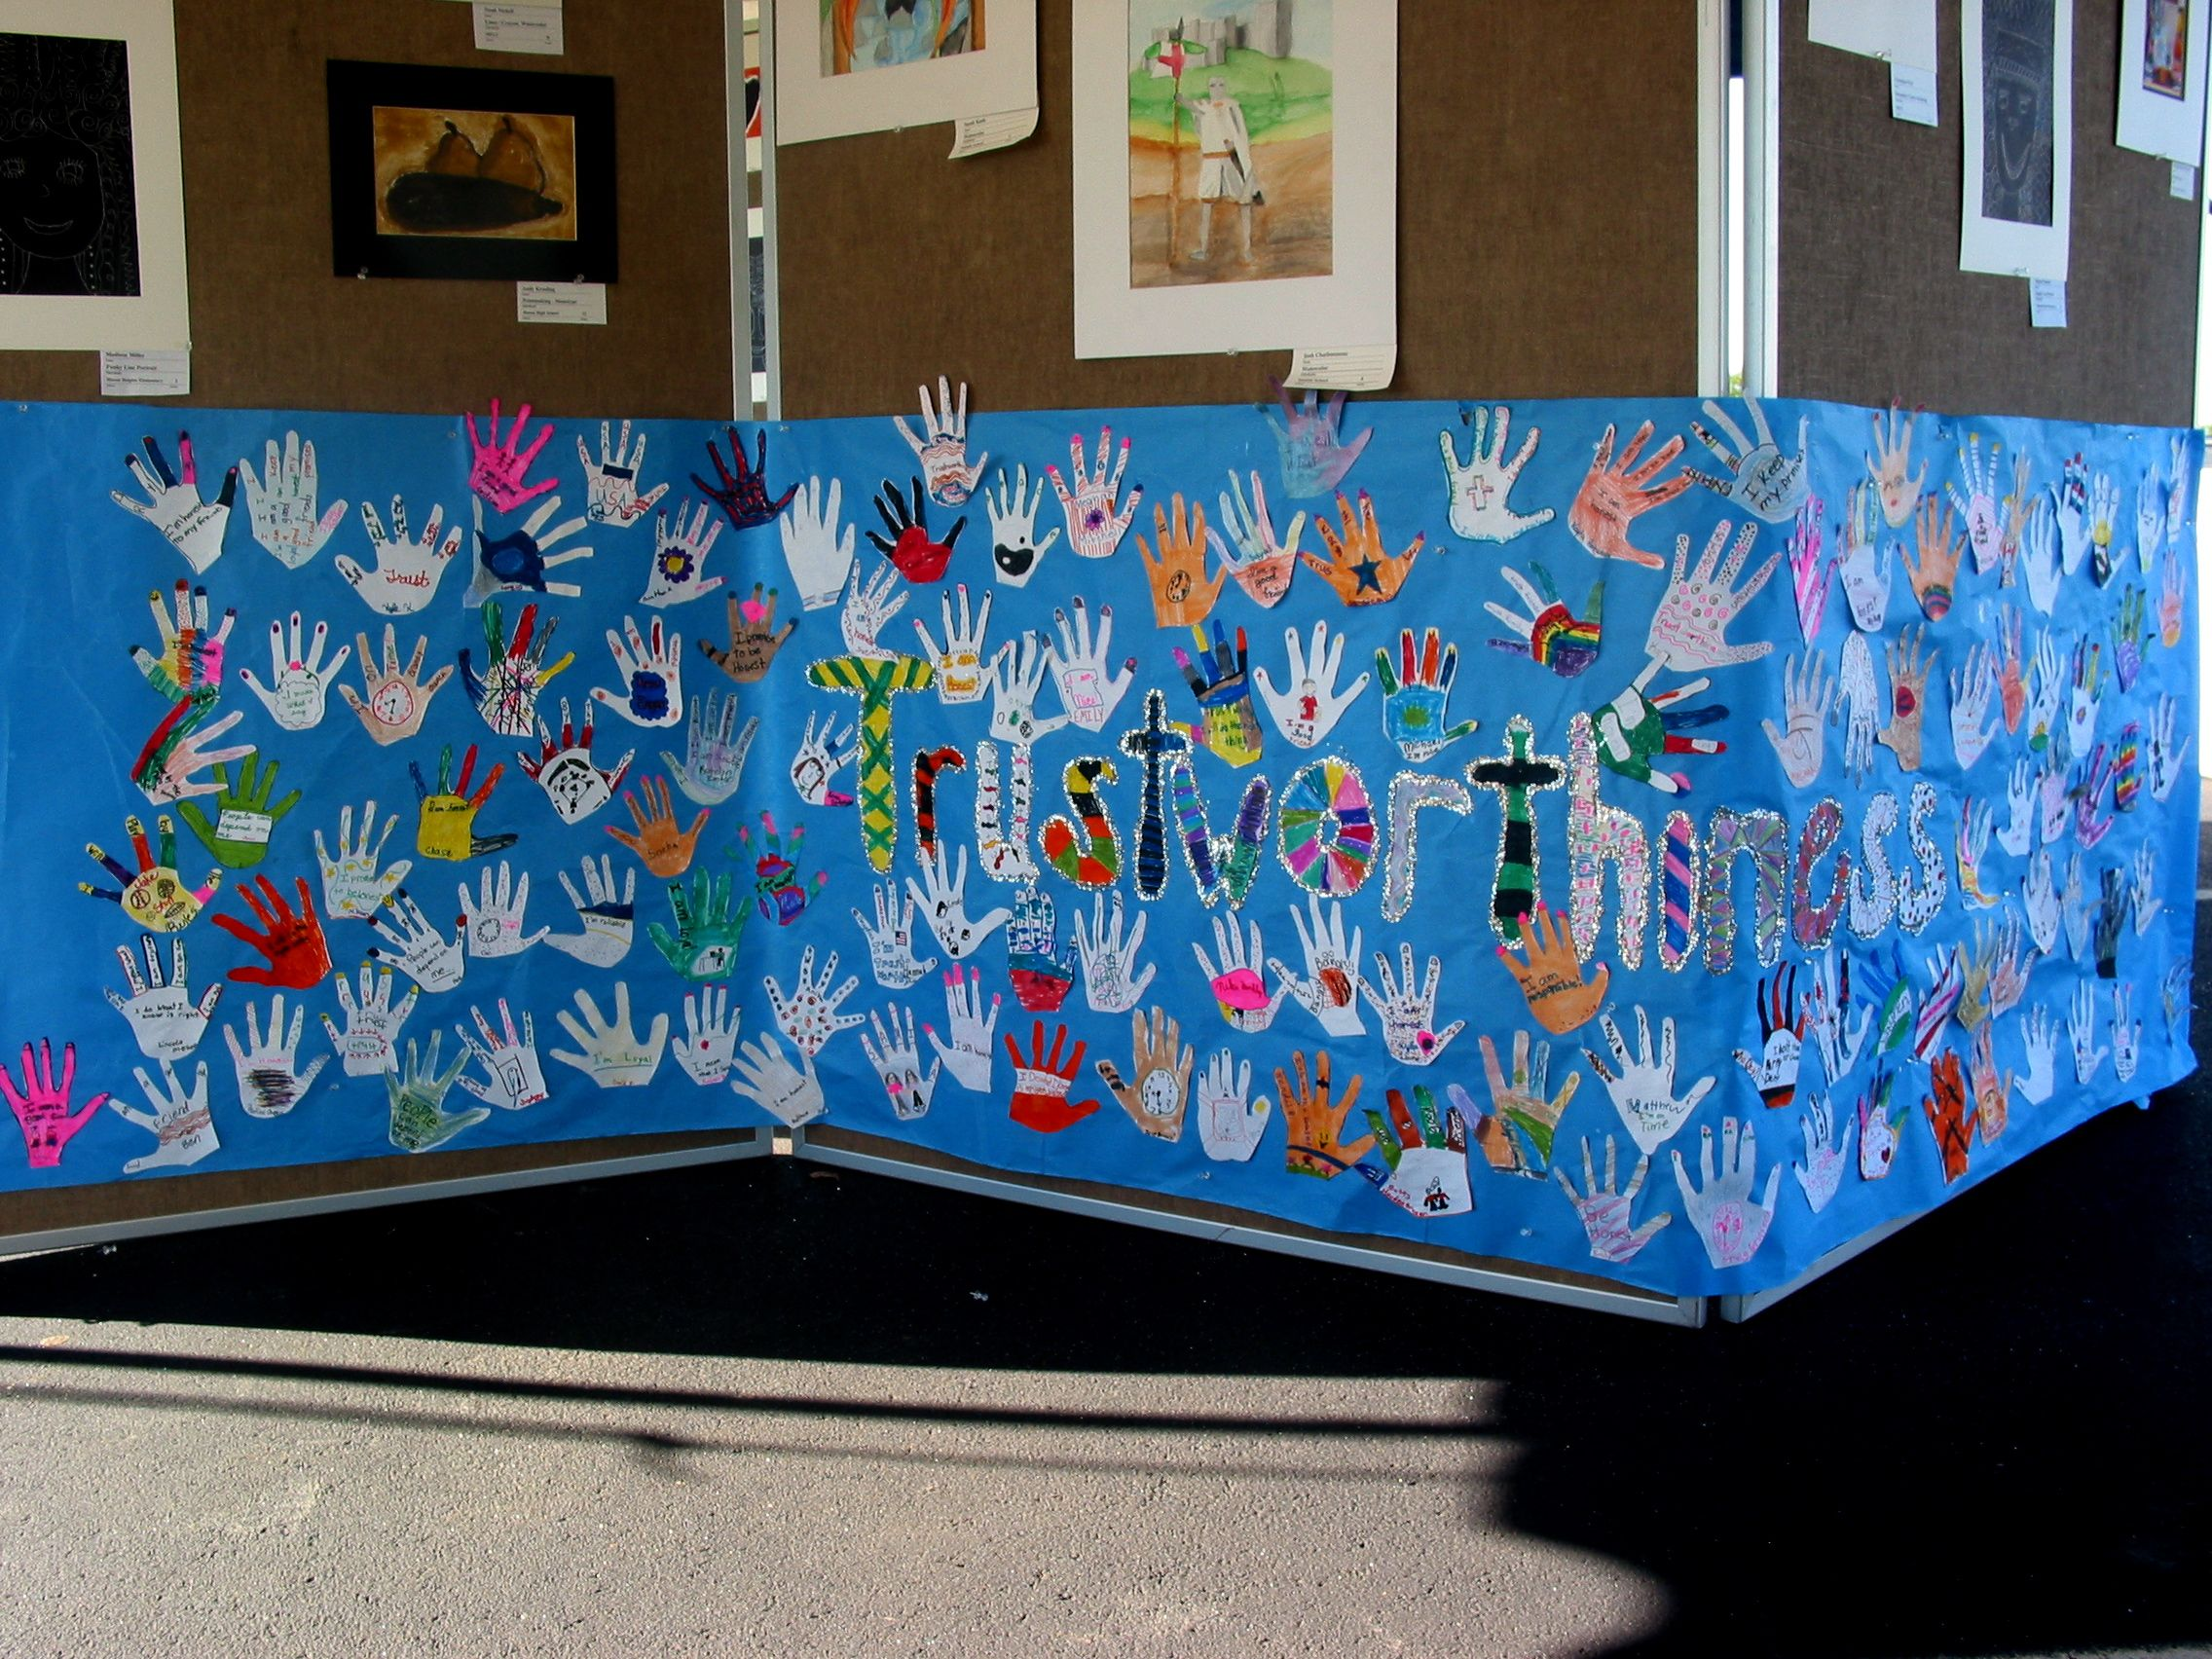 Pillars Of Character Students Traced Hand Wrote One Way To Show Trustworthiness Decorated